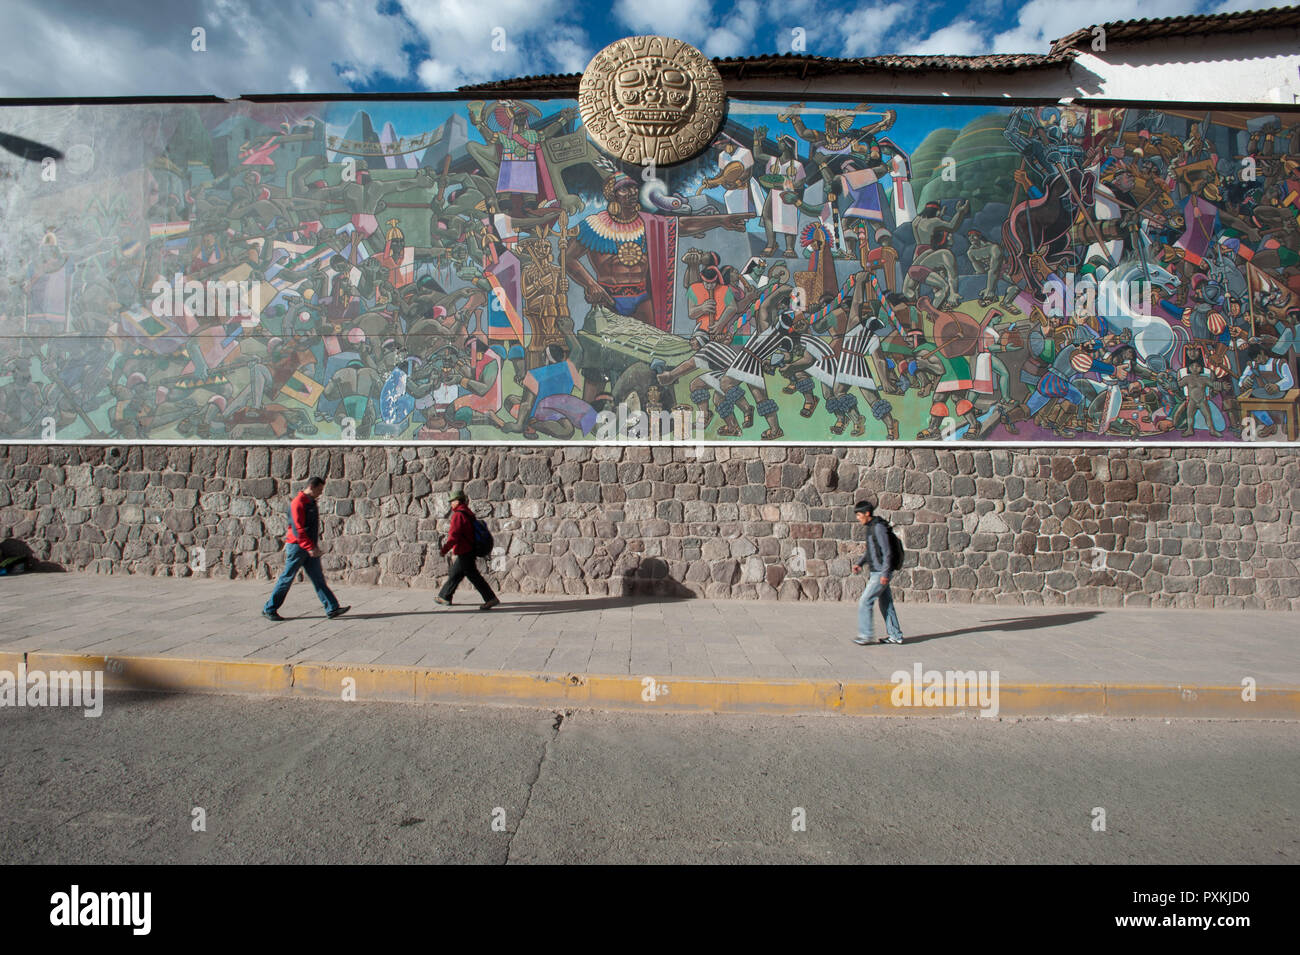 Cultural Identity Inca Celebrated In A Large Mural On The Avenida